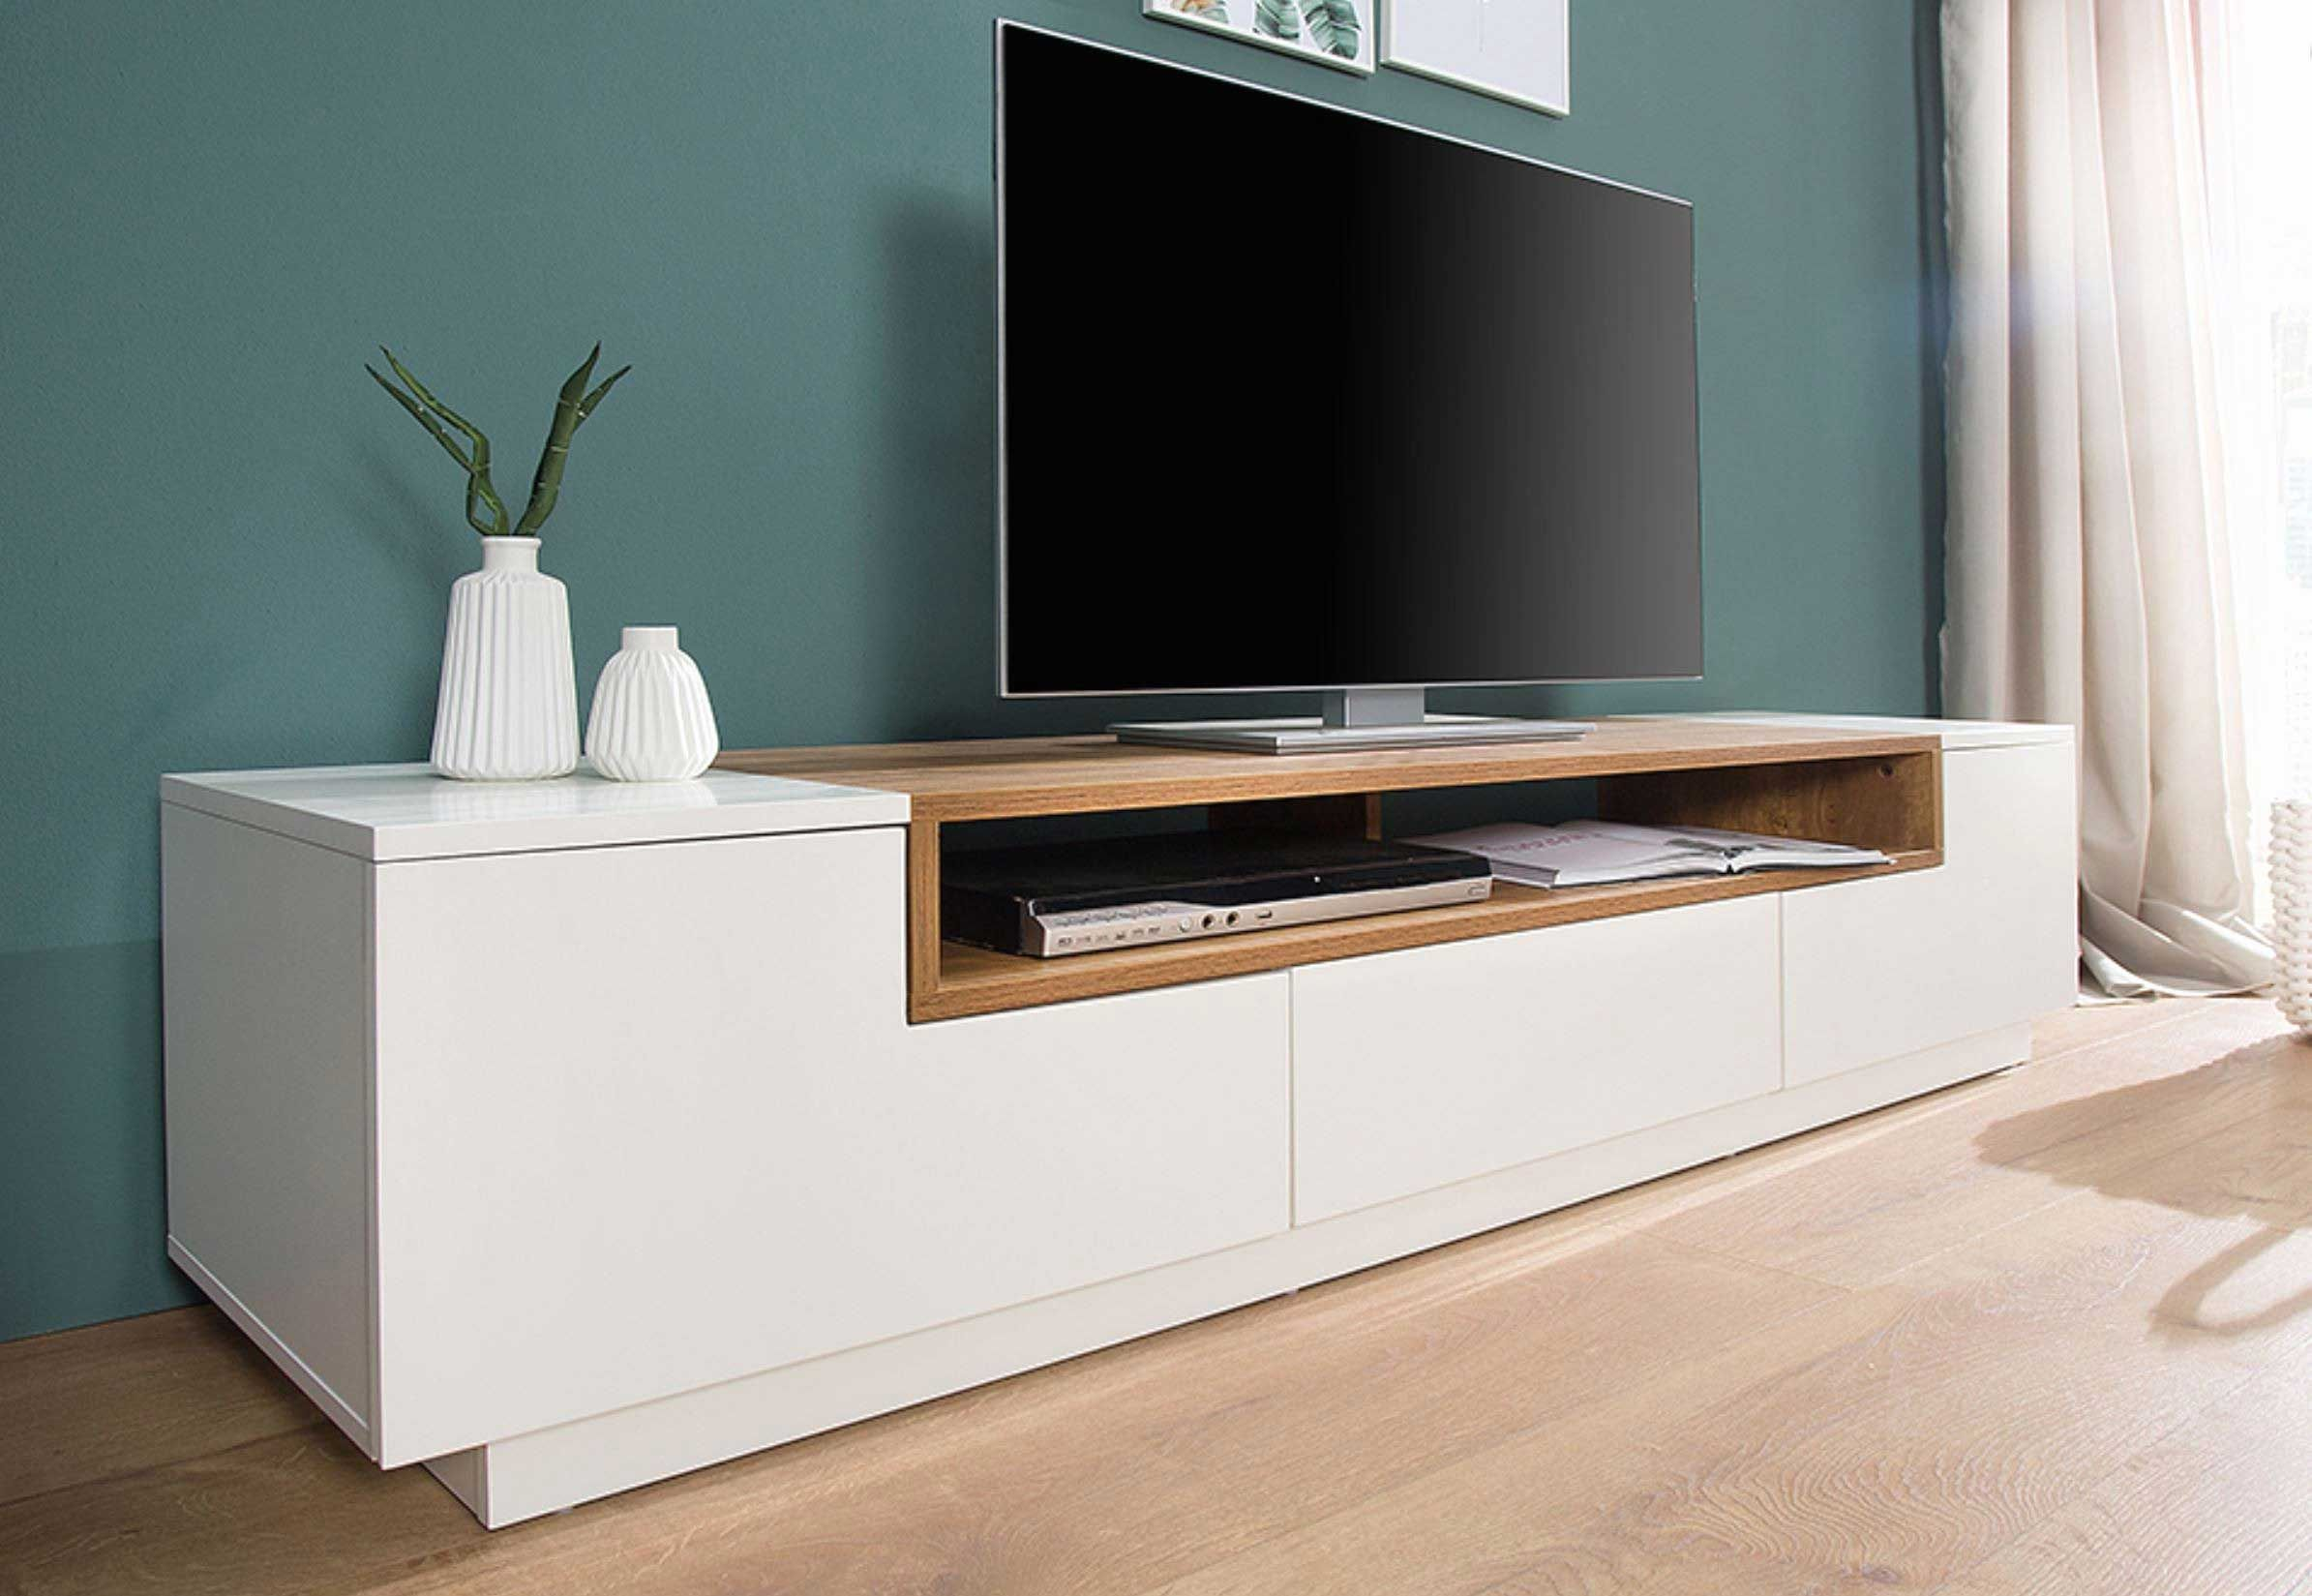 Chloe Decoration Meuble Tv Design Suspendu Vito 180cm Noir Et Blanc Floating Tv Stand Modern Tv Wall Units White Tv Stands